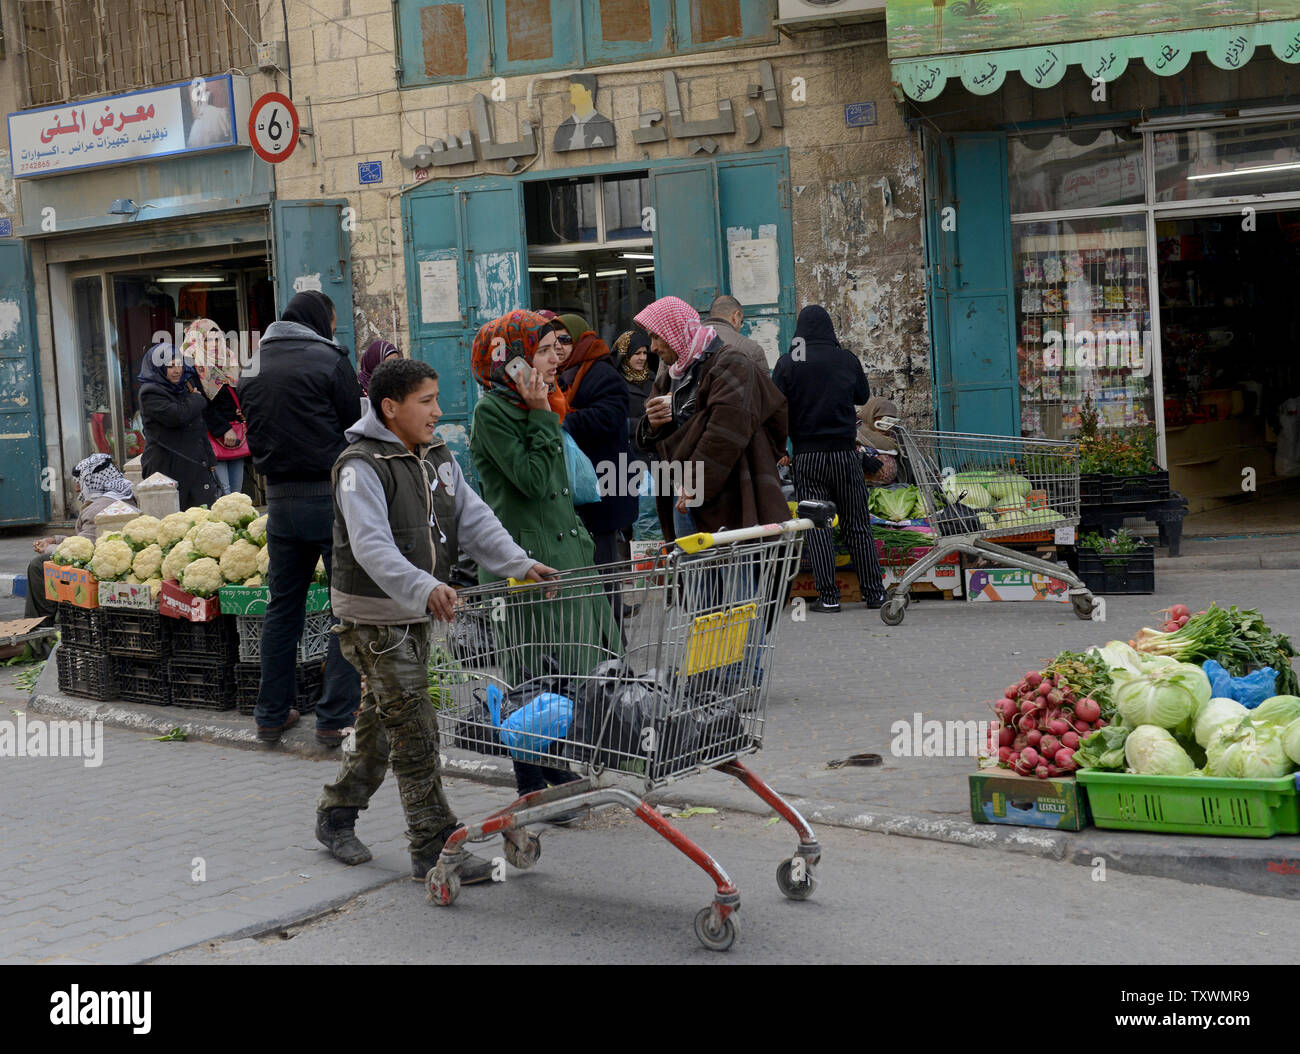 Palestinians shop in the Old City in Bethlehem, West Bank, February 11, 2015. A high level national Palestinian committee announced it has instructed stores across the West Bank to ban products from six major Israeli companies, which are: Tnuva, the Strauss Group, Osem, Elite Prigate and Jafora-Tabori. The ban is meant to countermeasure Israel's decision to withhold Palestinian tax revenue it collects on behalf of the Palestinian Authority. West Bank grocers  must stop selling Israeli products within two weeks from today. Photo by Debbie Hill/UPI - Stock Image